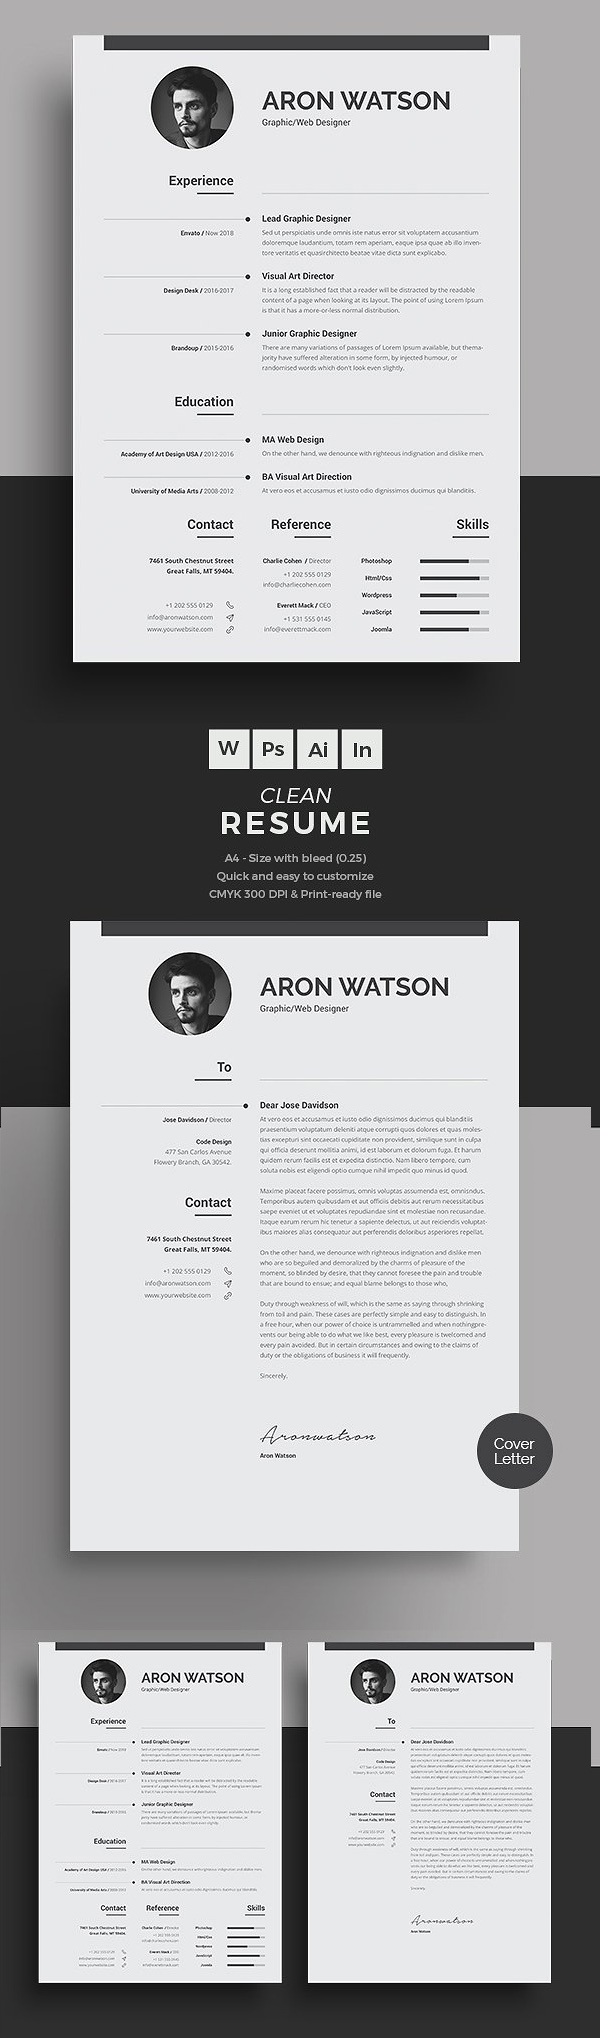 50 best minimal resume templates 12 - Resume Templates For Graphic Designers